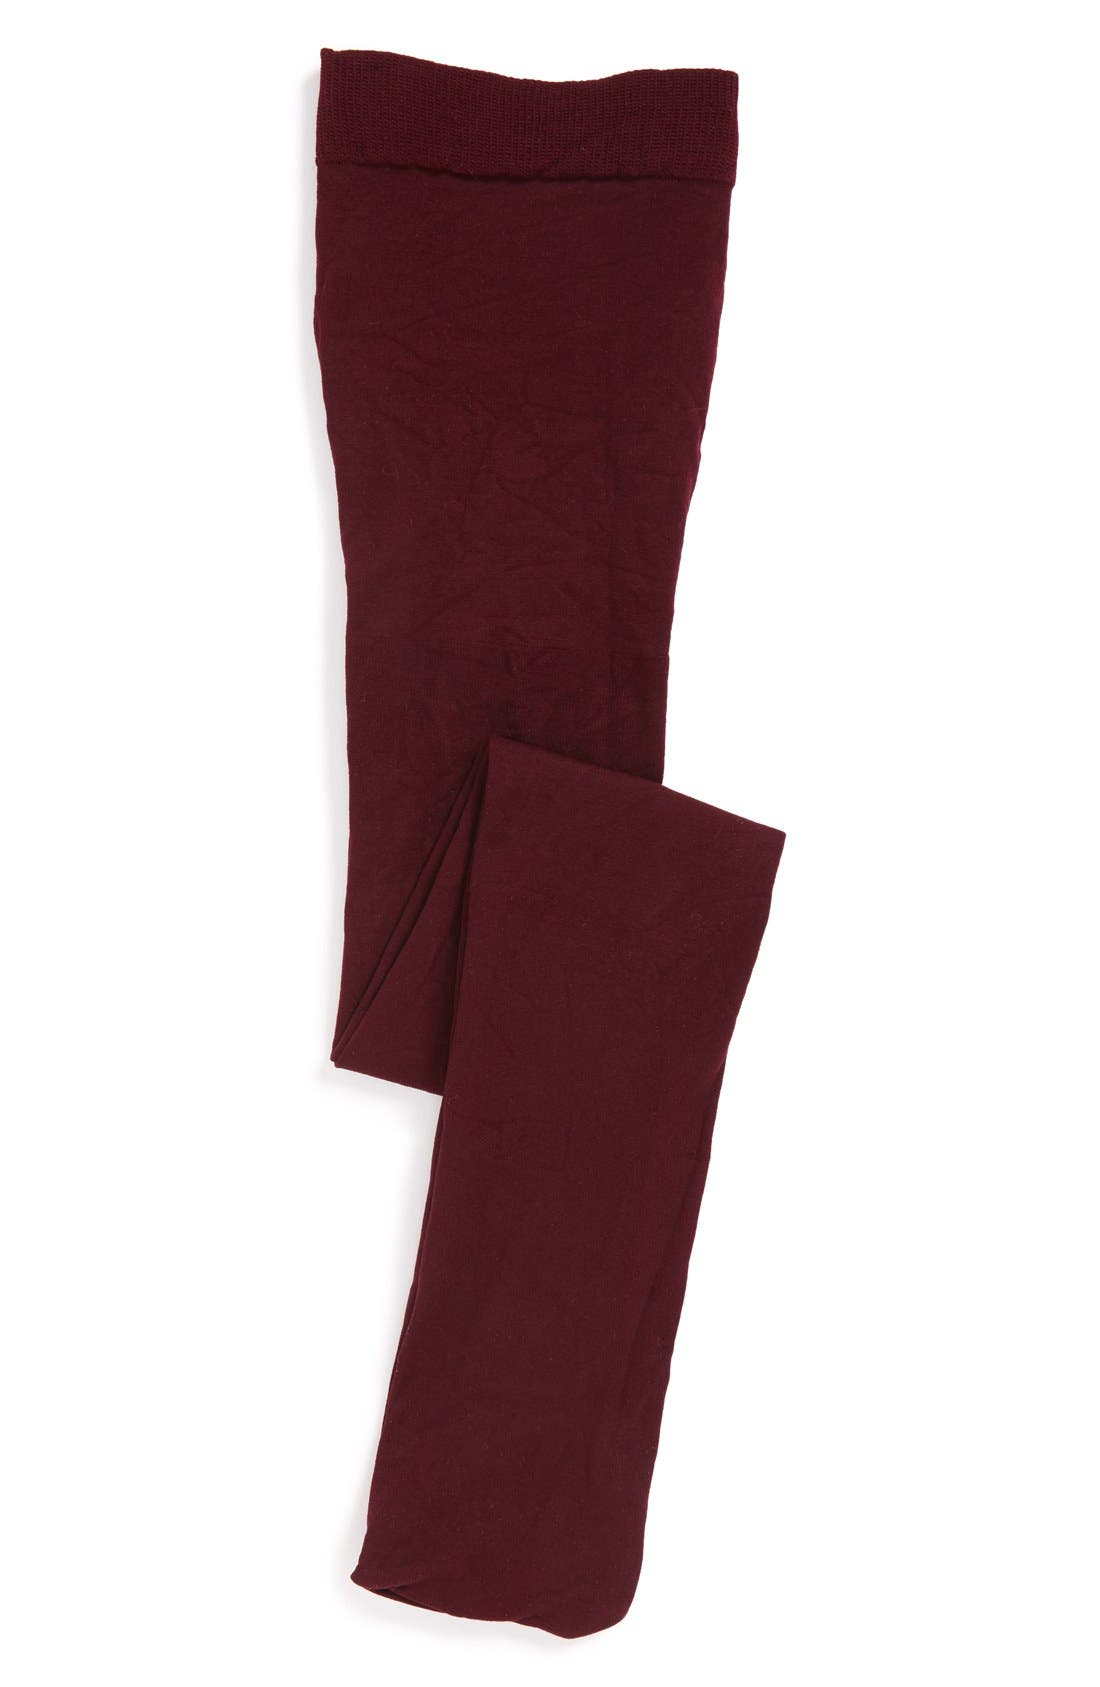 Main Image - Ruby & Bloom 'So Fine' Microfiber Tights (Toddler Girls, Little Girls & Big Girls)